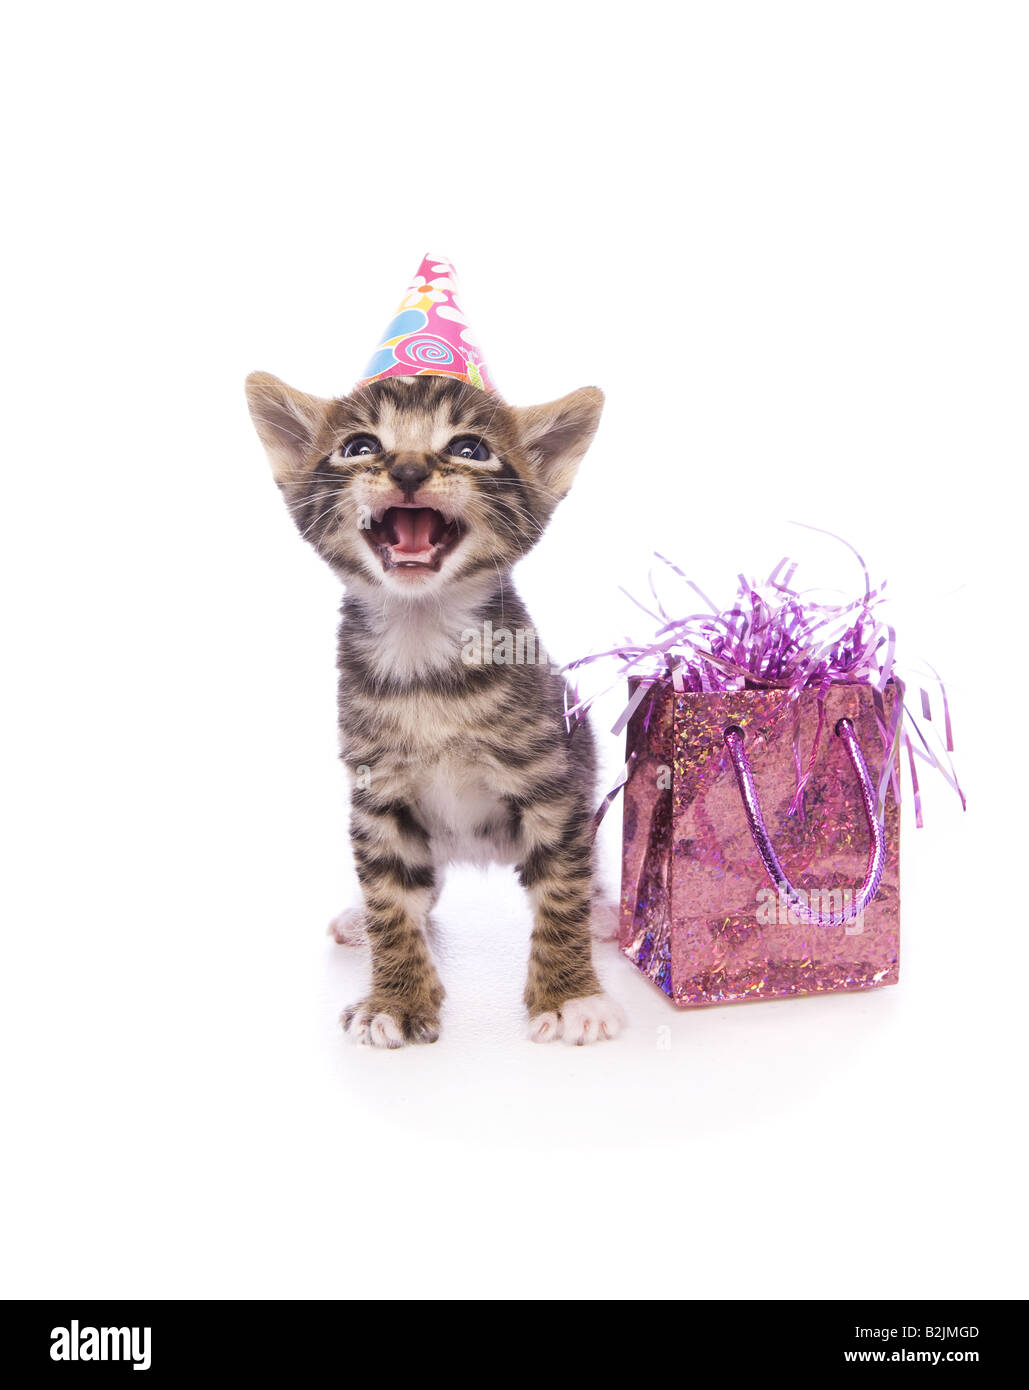 adorable happy birthday kitten with mouth open wearing hat with